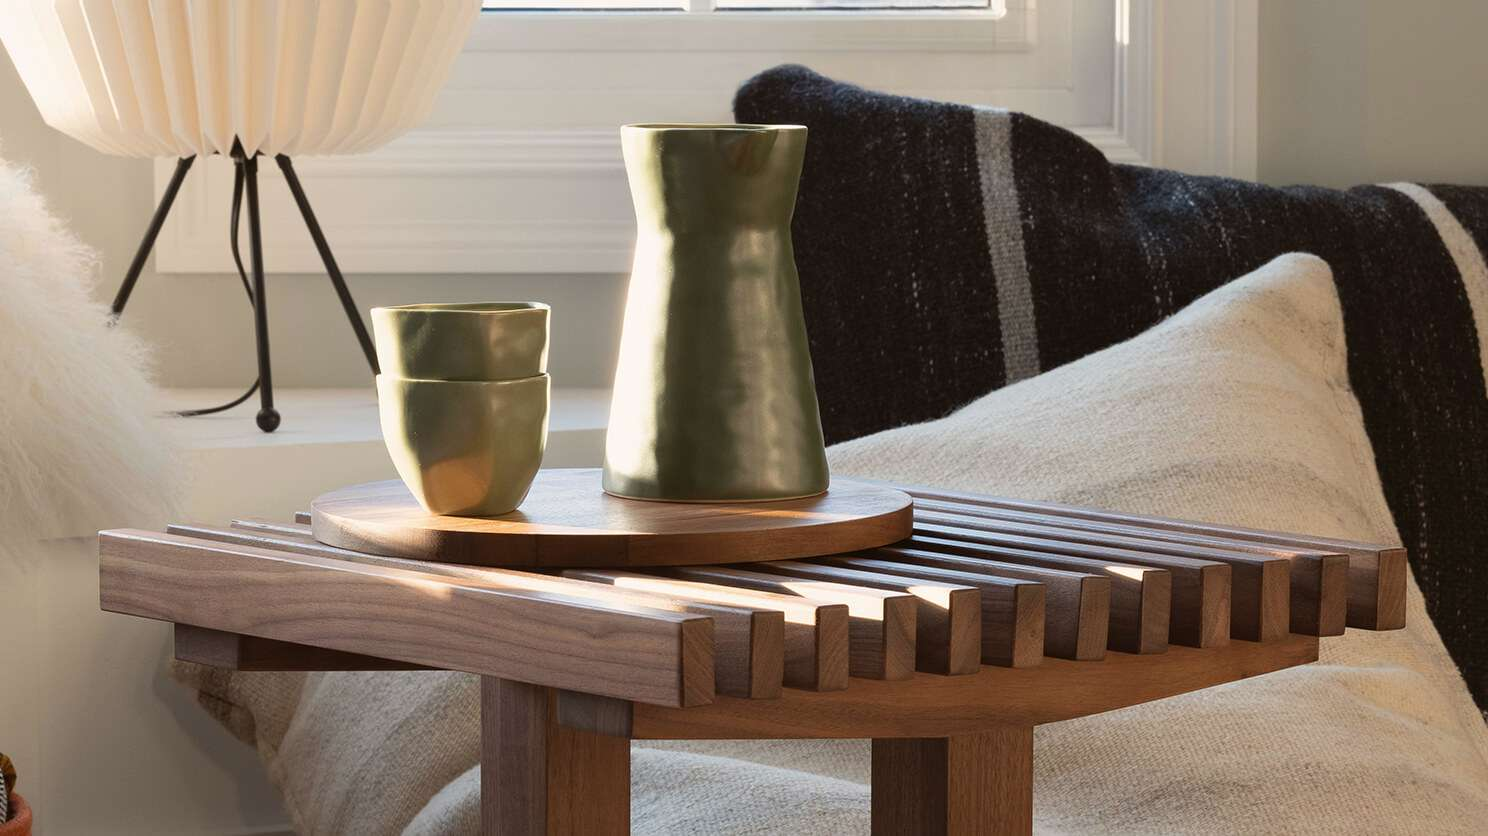 Wooden table with green vases.